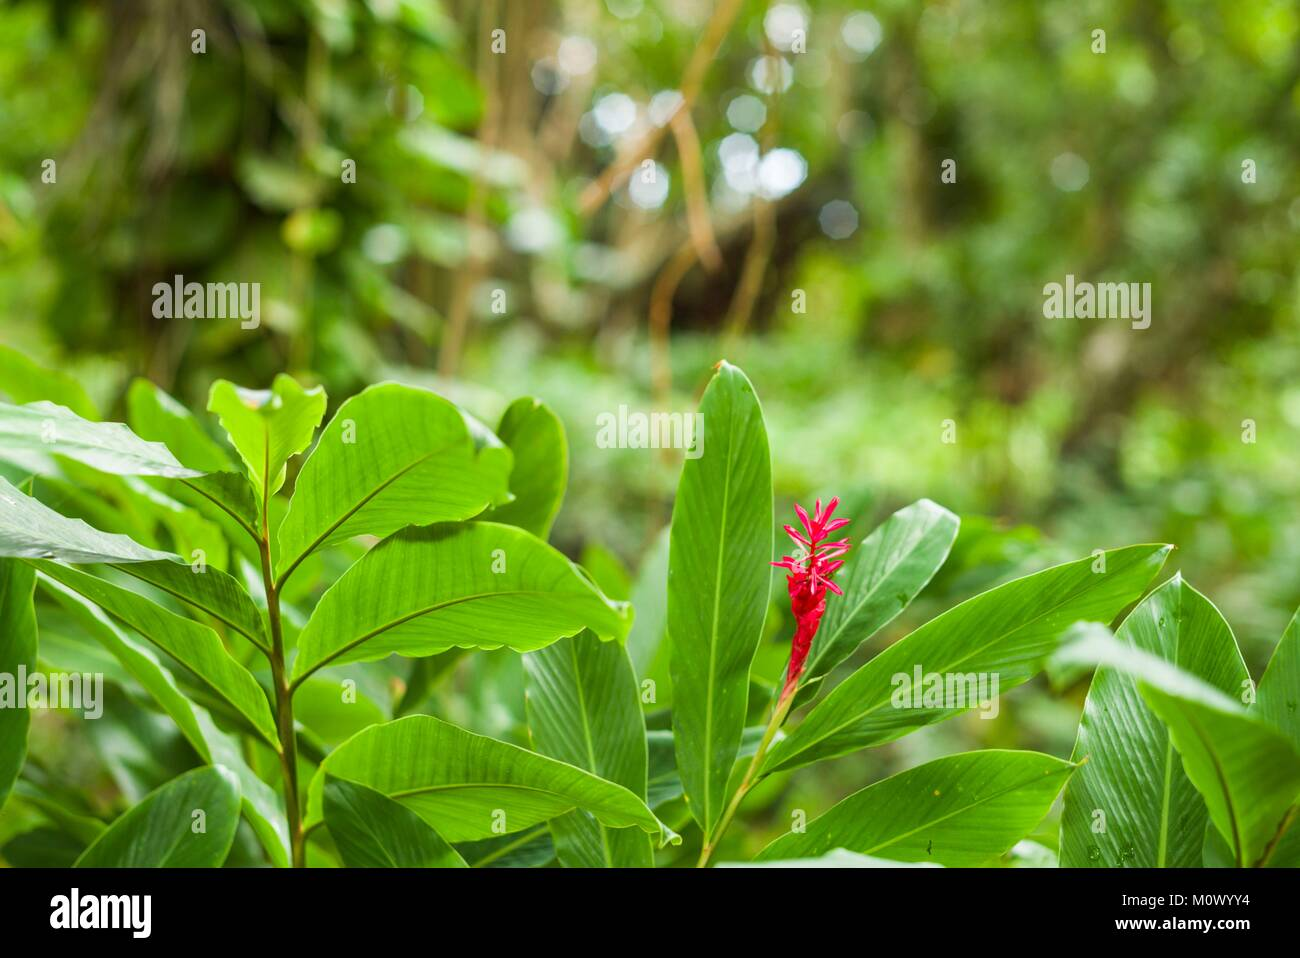 St. Kitts and Nevis,St. Kitts,Molineux,heliconia - Stock Image